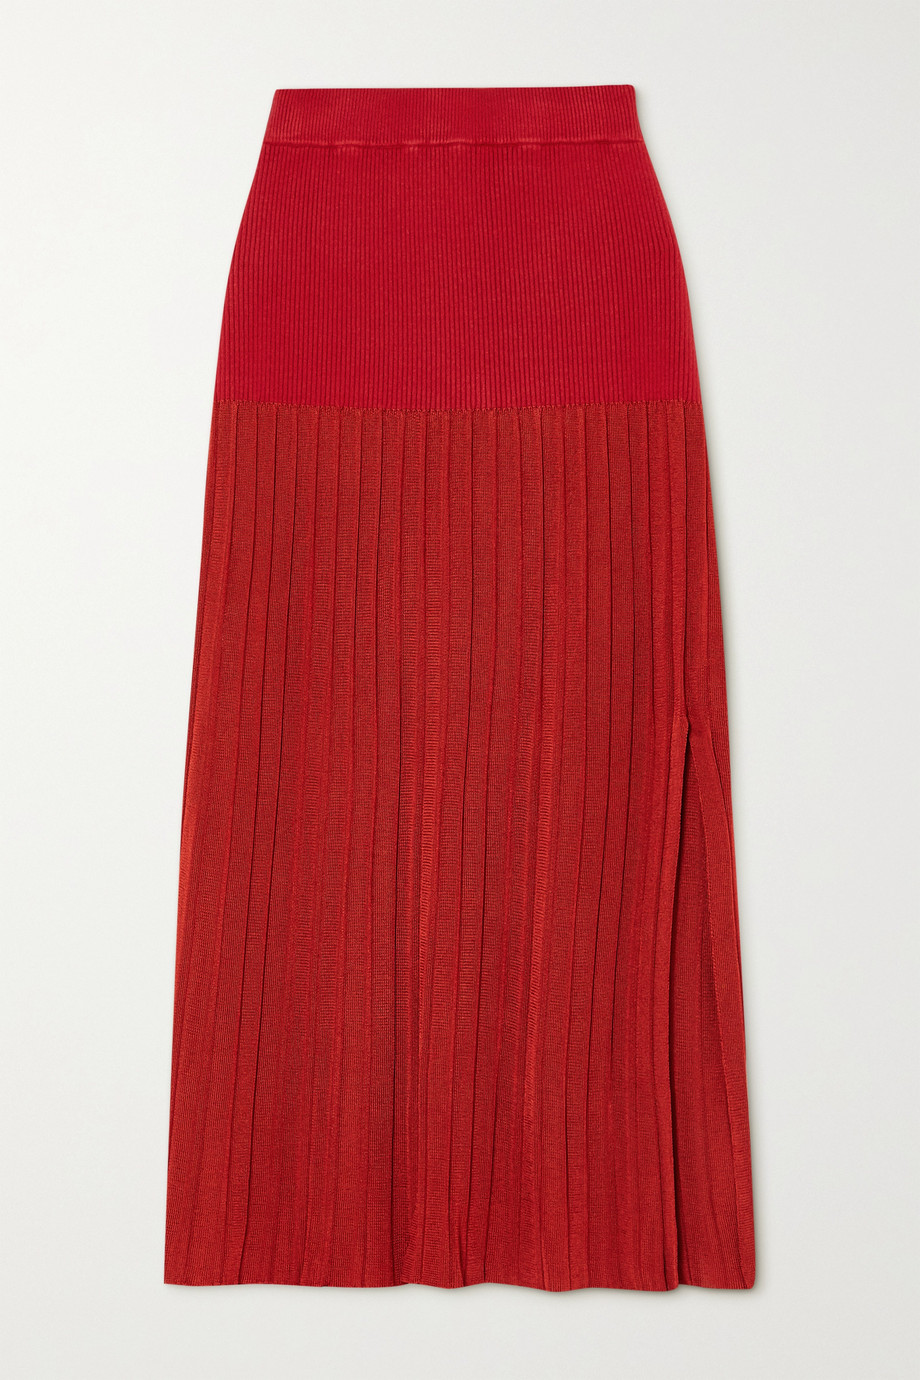 Altuzarra Dean pleated stretch-knit midi skirt